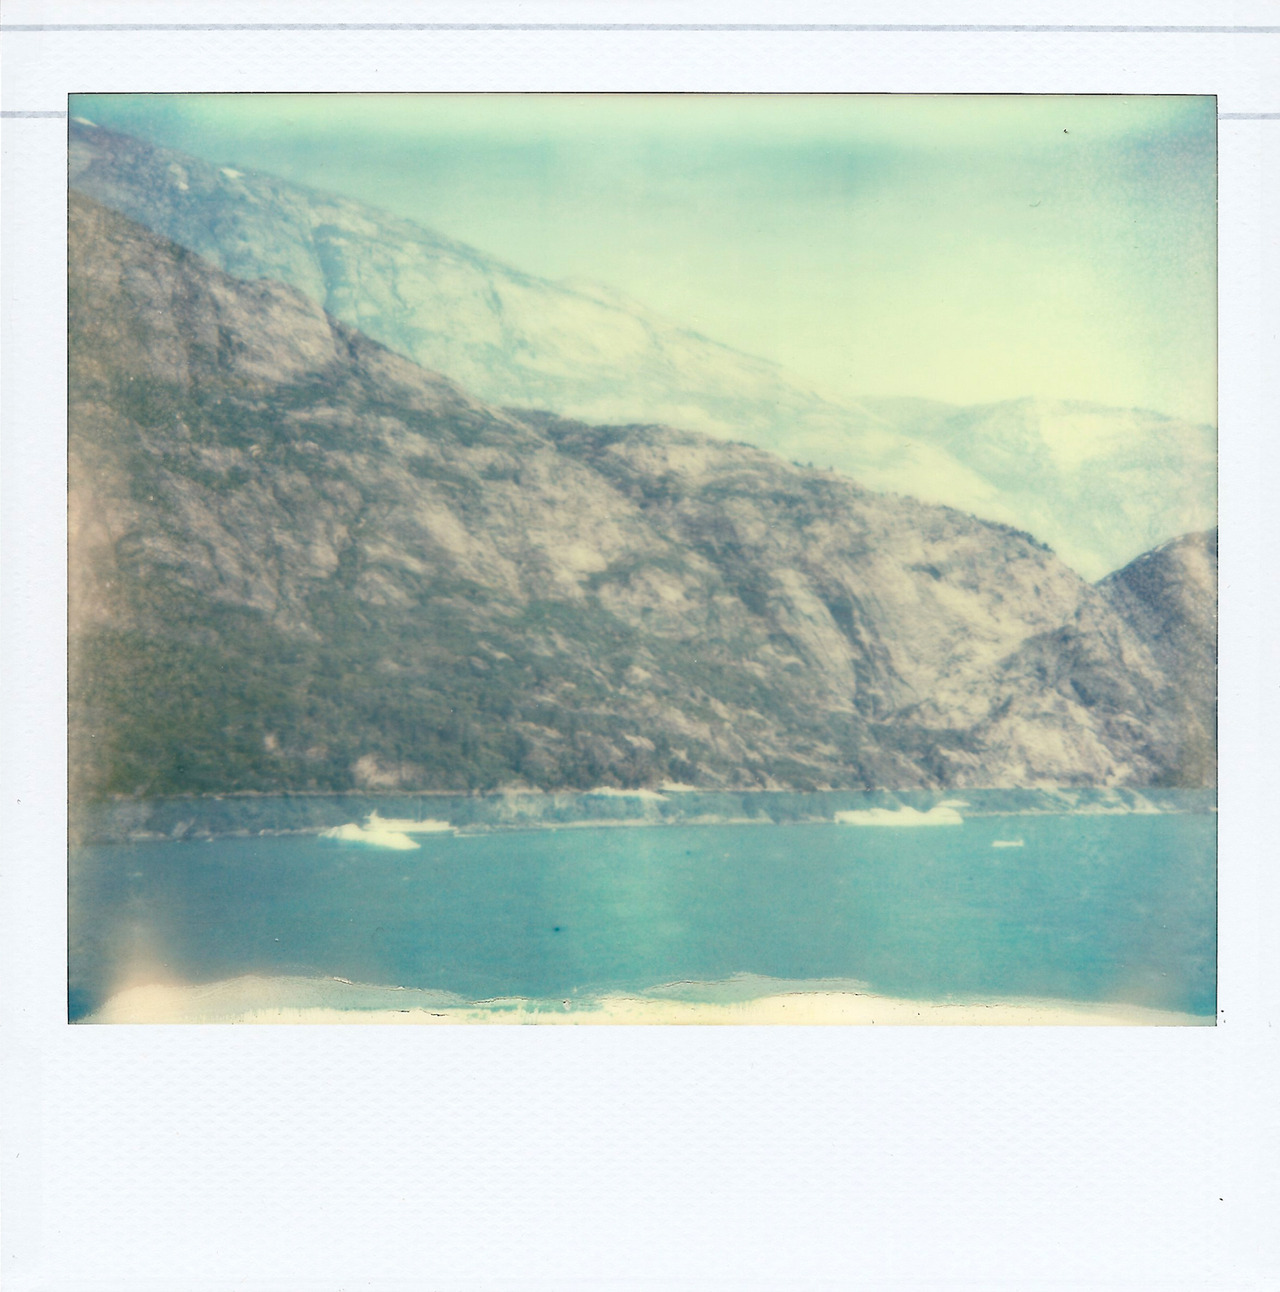 lindsaykunz:  Mountains, Water, Ice, and Blue.  Alaska.  2012-08